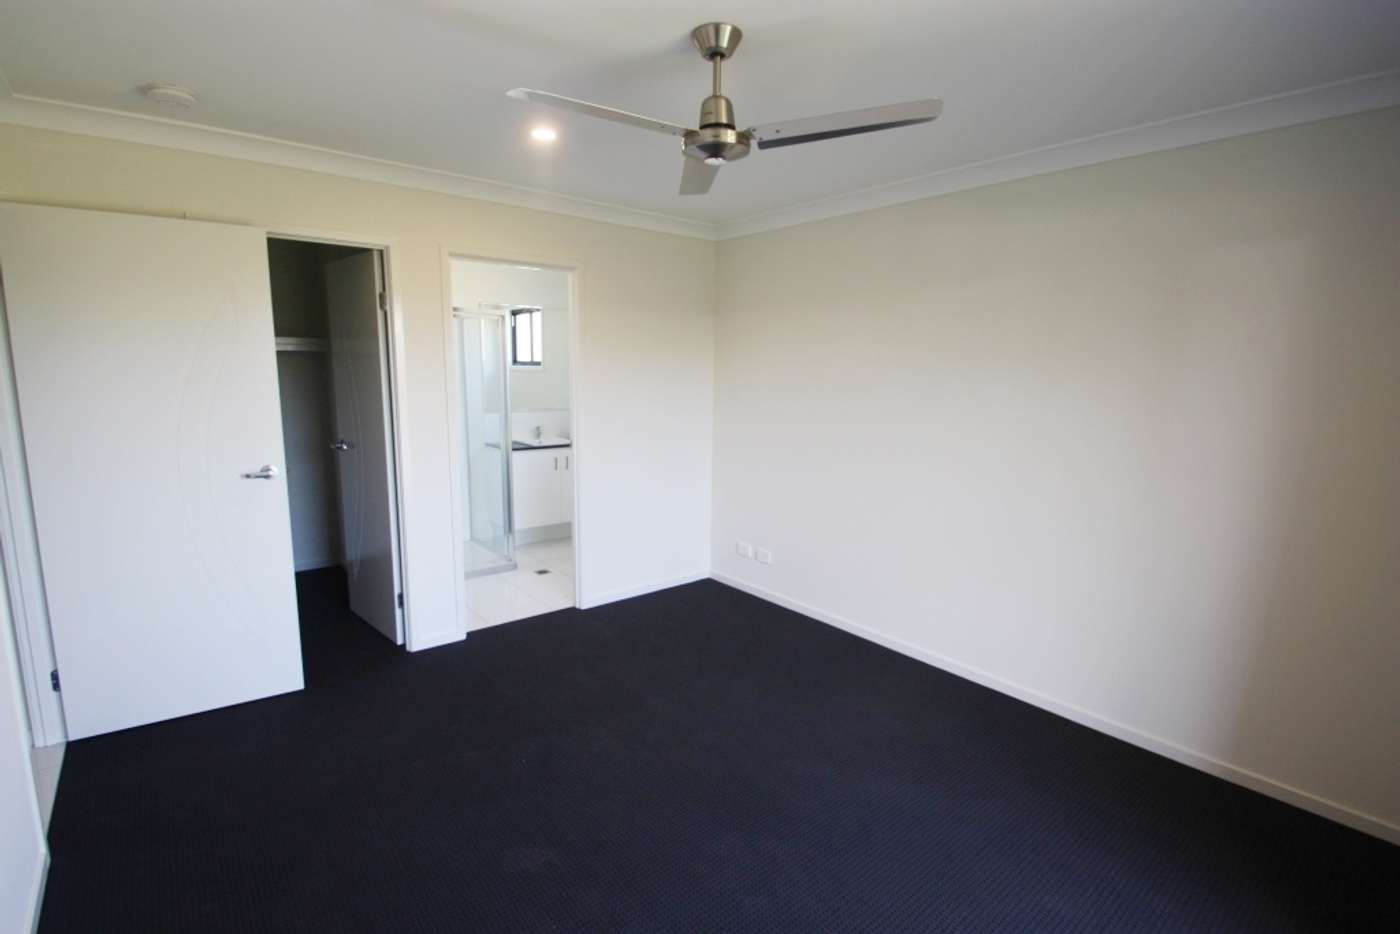 Seventh view of Homely house listing, 58 Marshall Circuit, Coomera QLD 4209